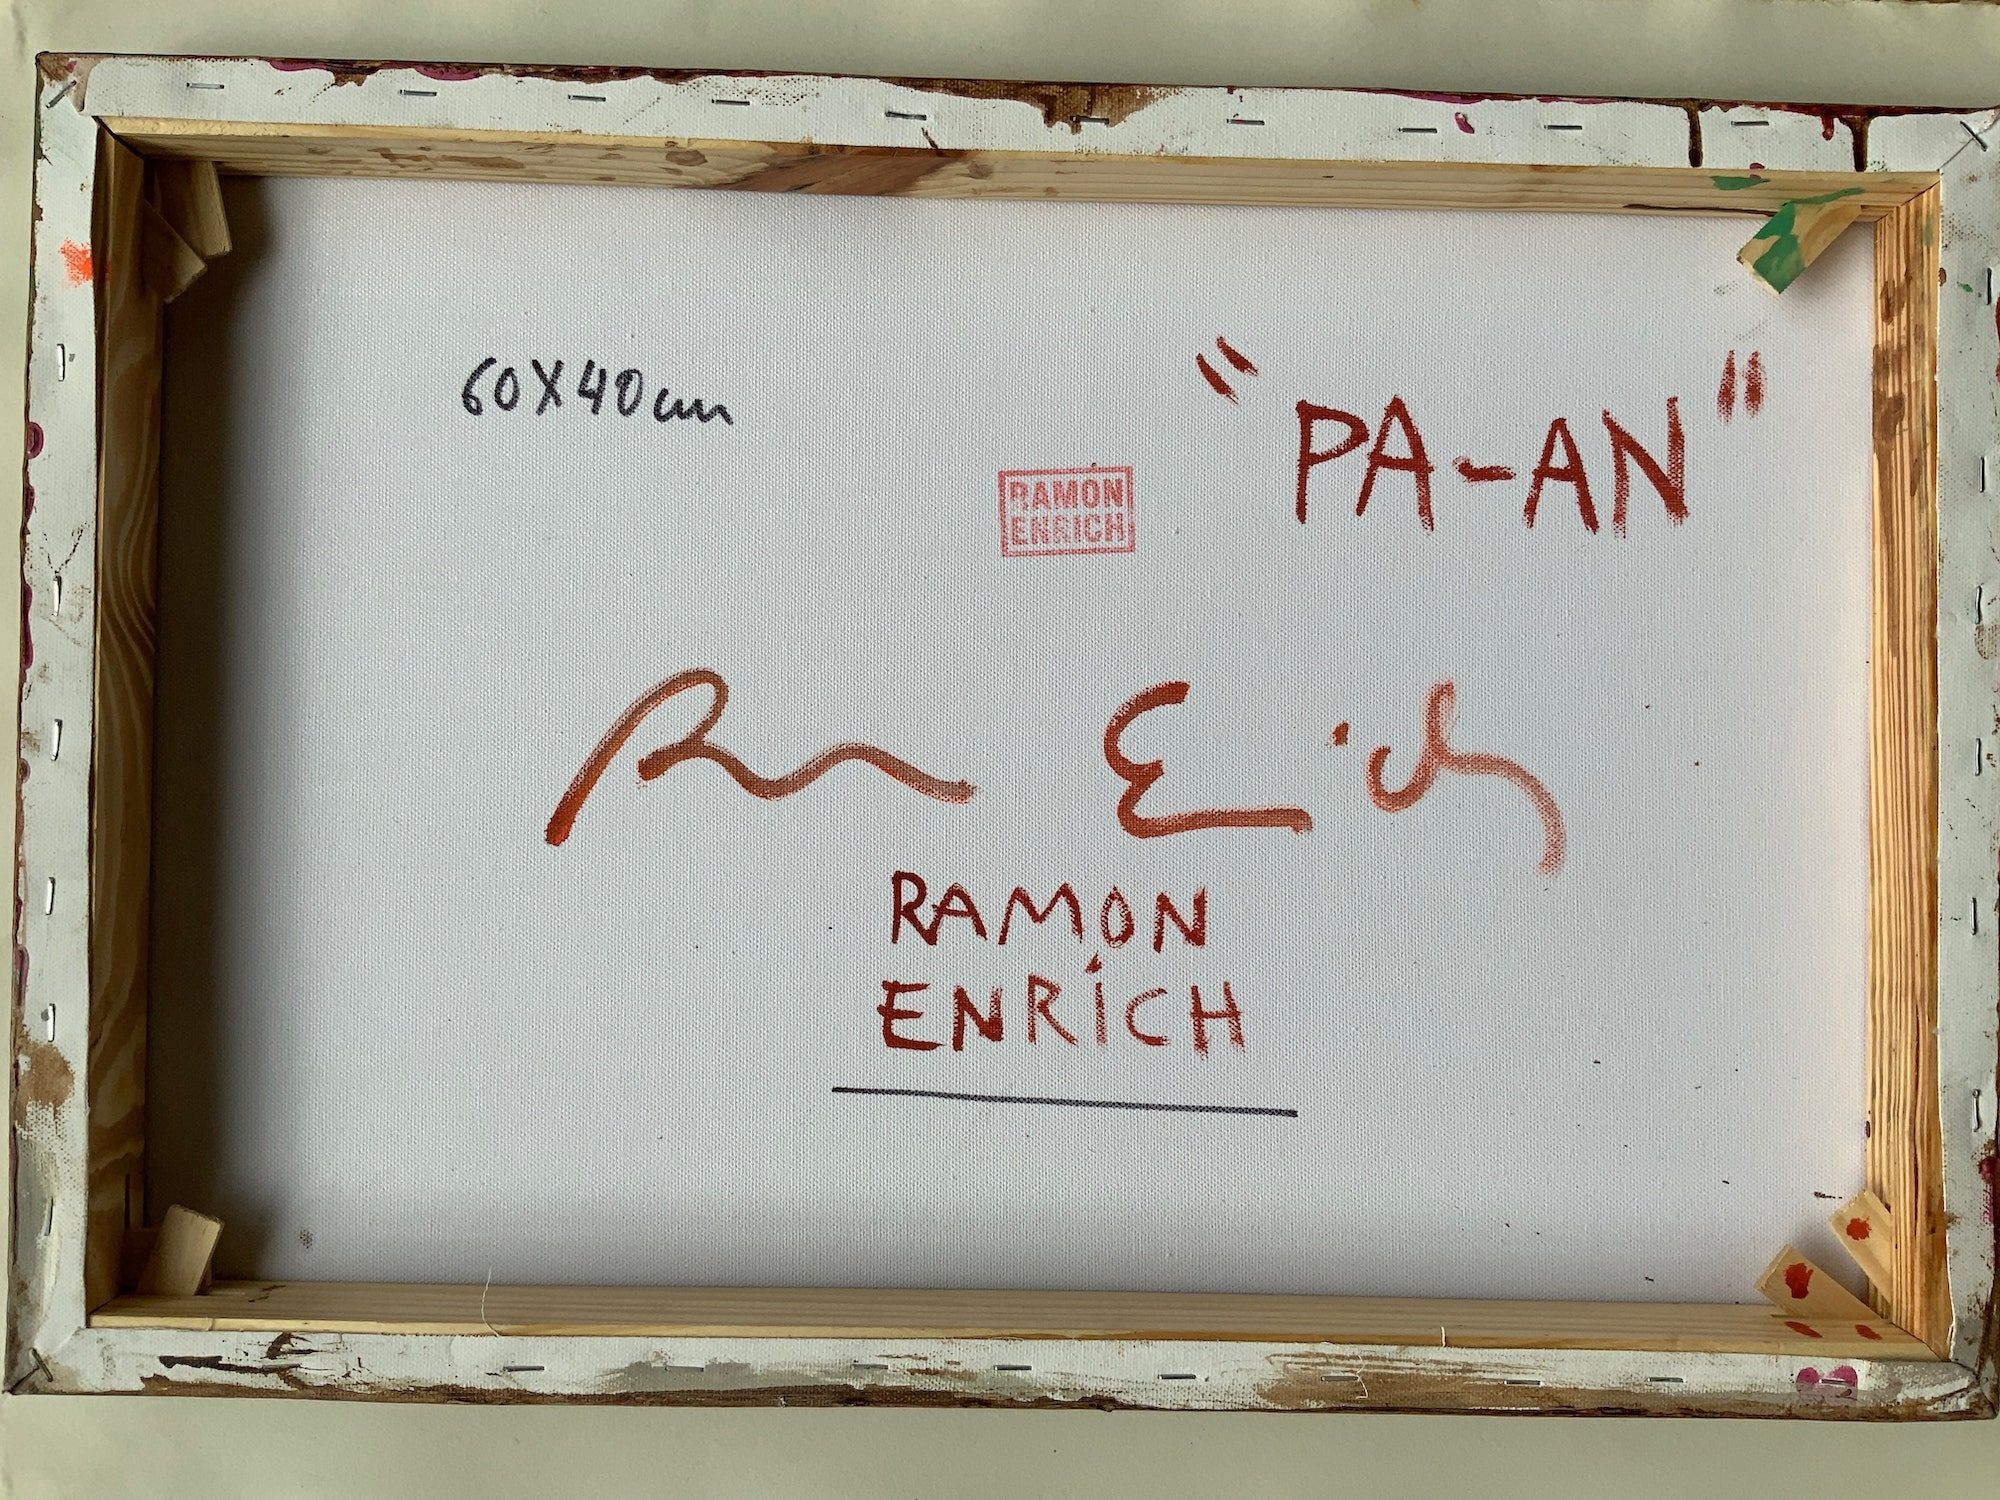 PA-AN,Ramon Enrich,Contemporary painting, detail 2